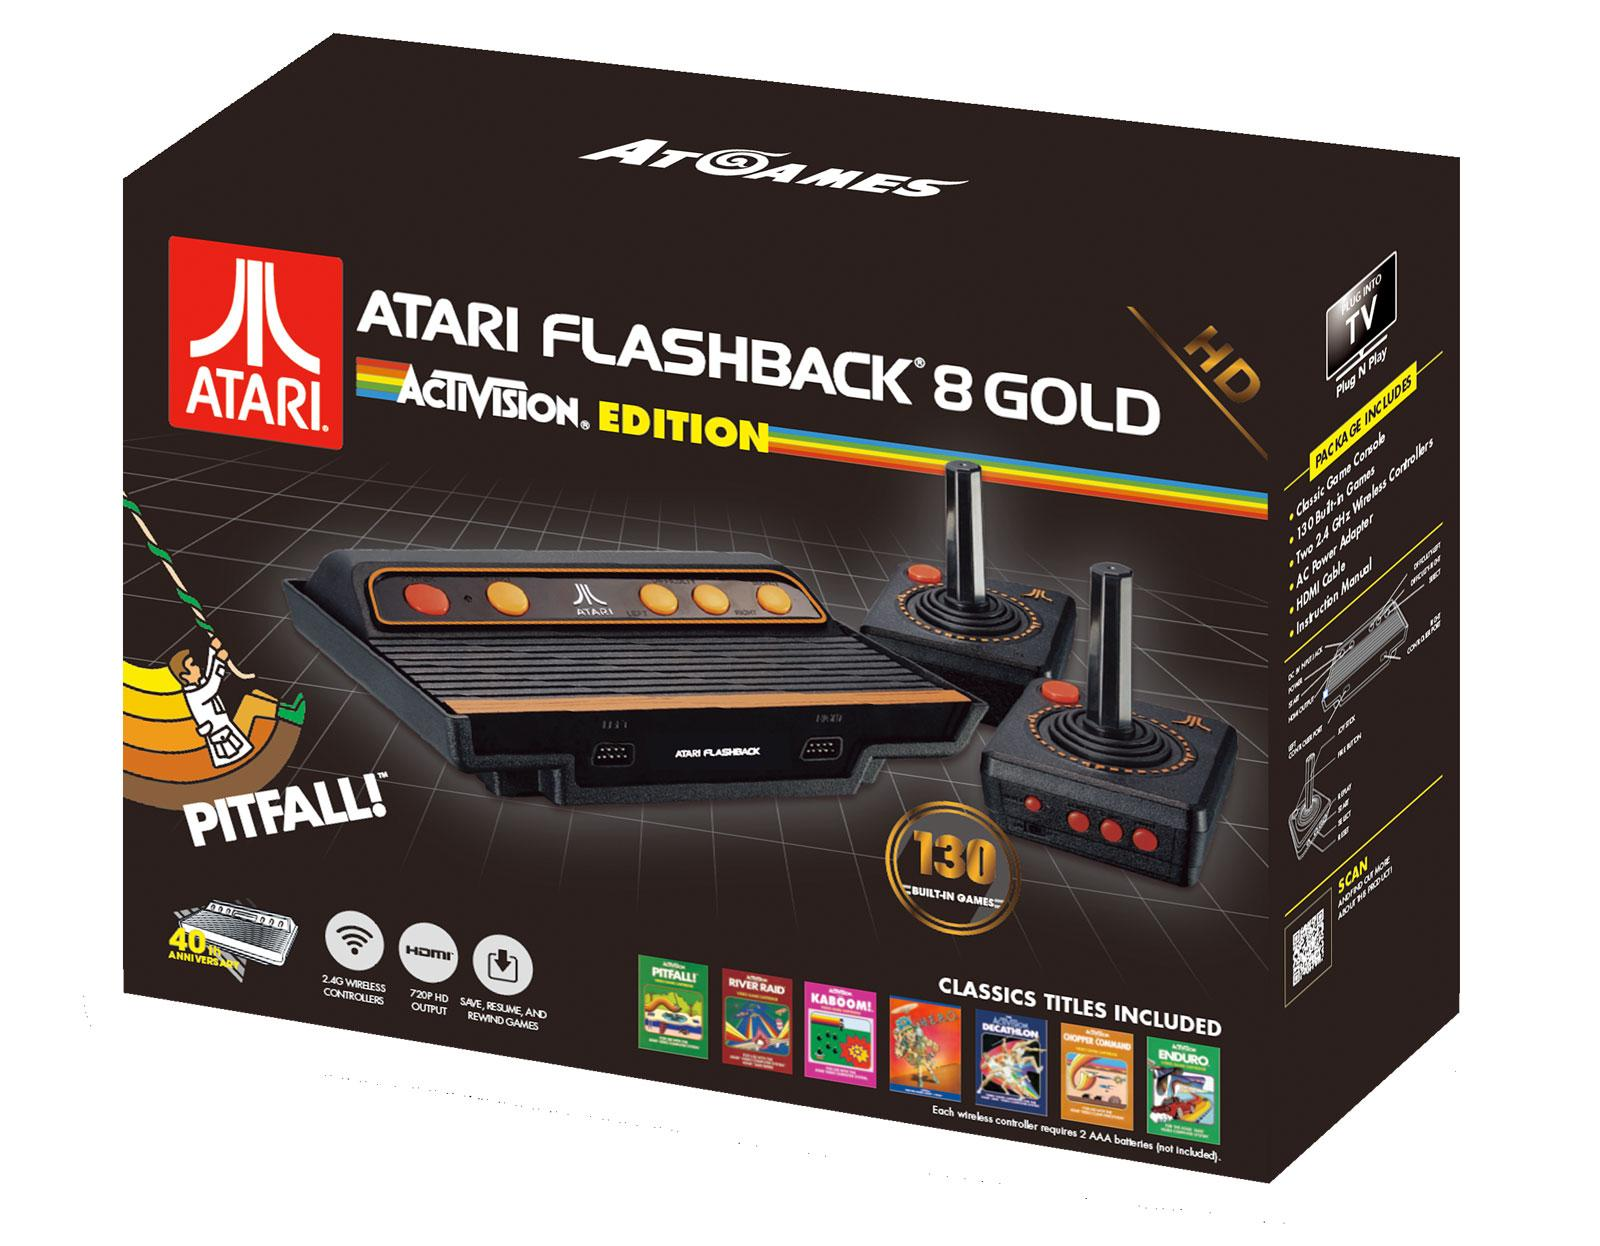 ATARI - RETRO FLASHBACK 8 HD- 130 GAMES